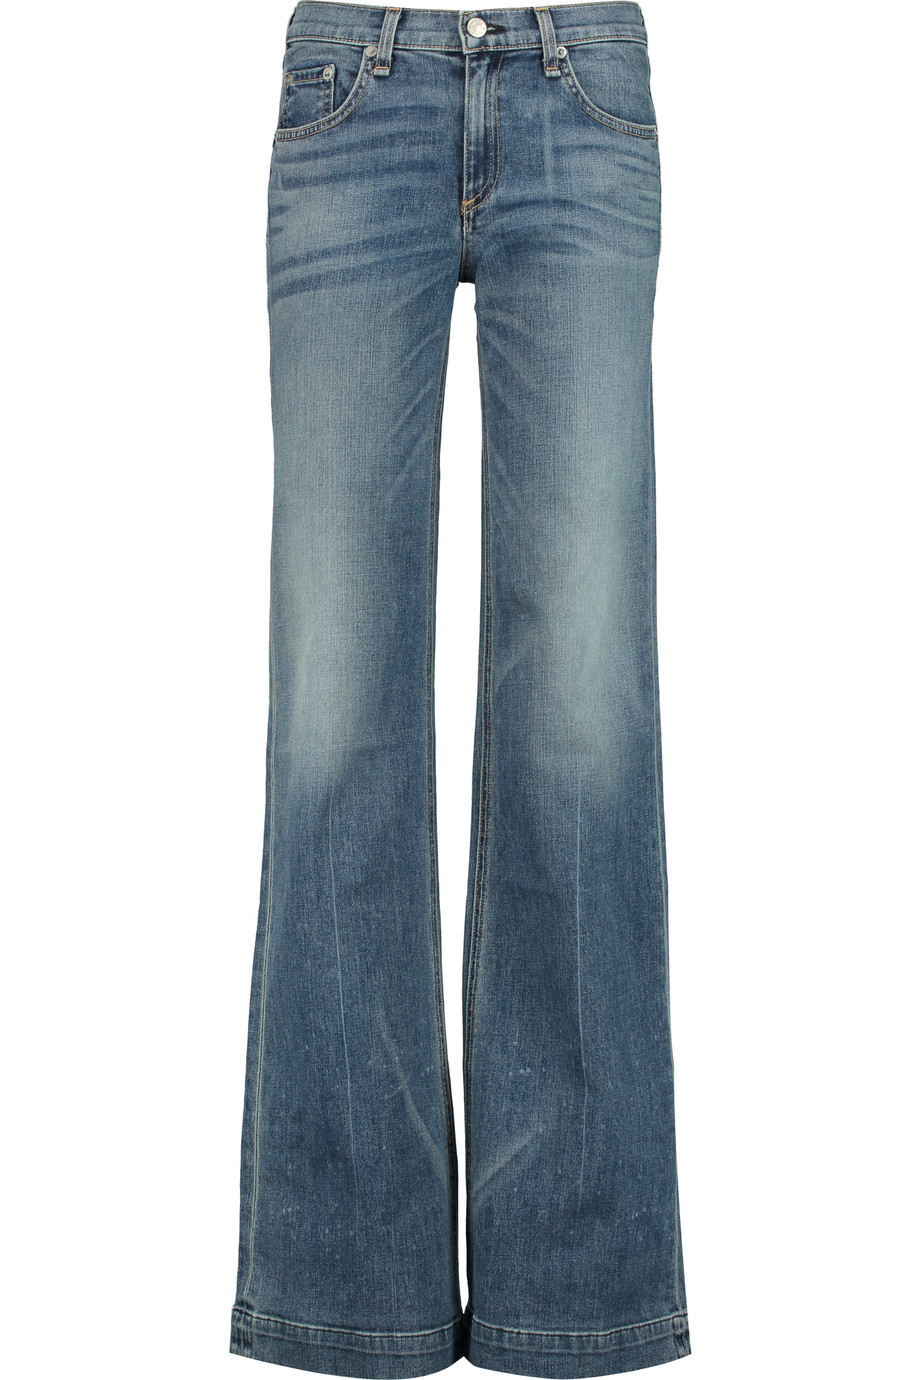 Low Rise Flared Jeans Mid Denim - style: flares; length: standard; pattern: plain; pocket detail: traditional 5 pocket; waist: mid/regular rise; predominant colour: denim; occasions: casual; fibres: cotton - stretch; jeans detail: whiskering, washed/faded; texture group: denim; pattern type: fabric; season: s/s 2016; wardrobe: basic